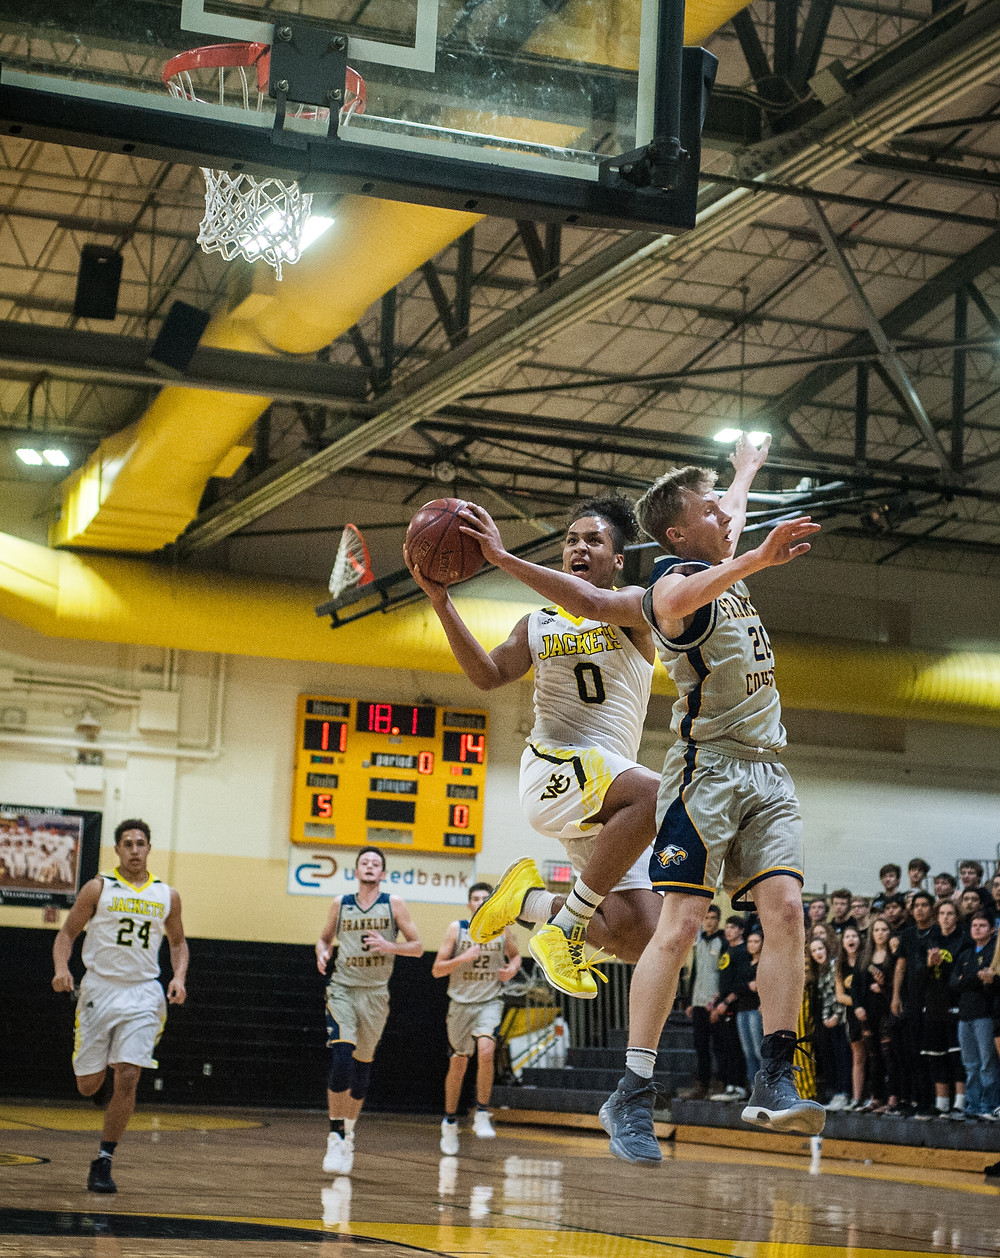 ABBIE HUDSON attempts a shot over a Lady Flyer defender in the second half of the Lady Jackets' loss on Friday, Dec. 8. (Photo by Bill Caine)